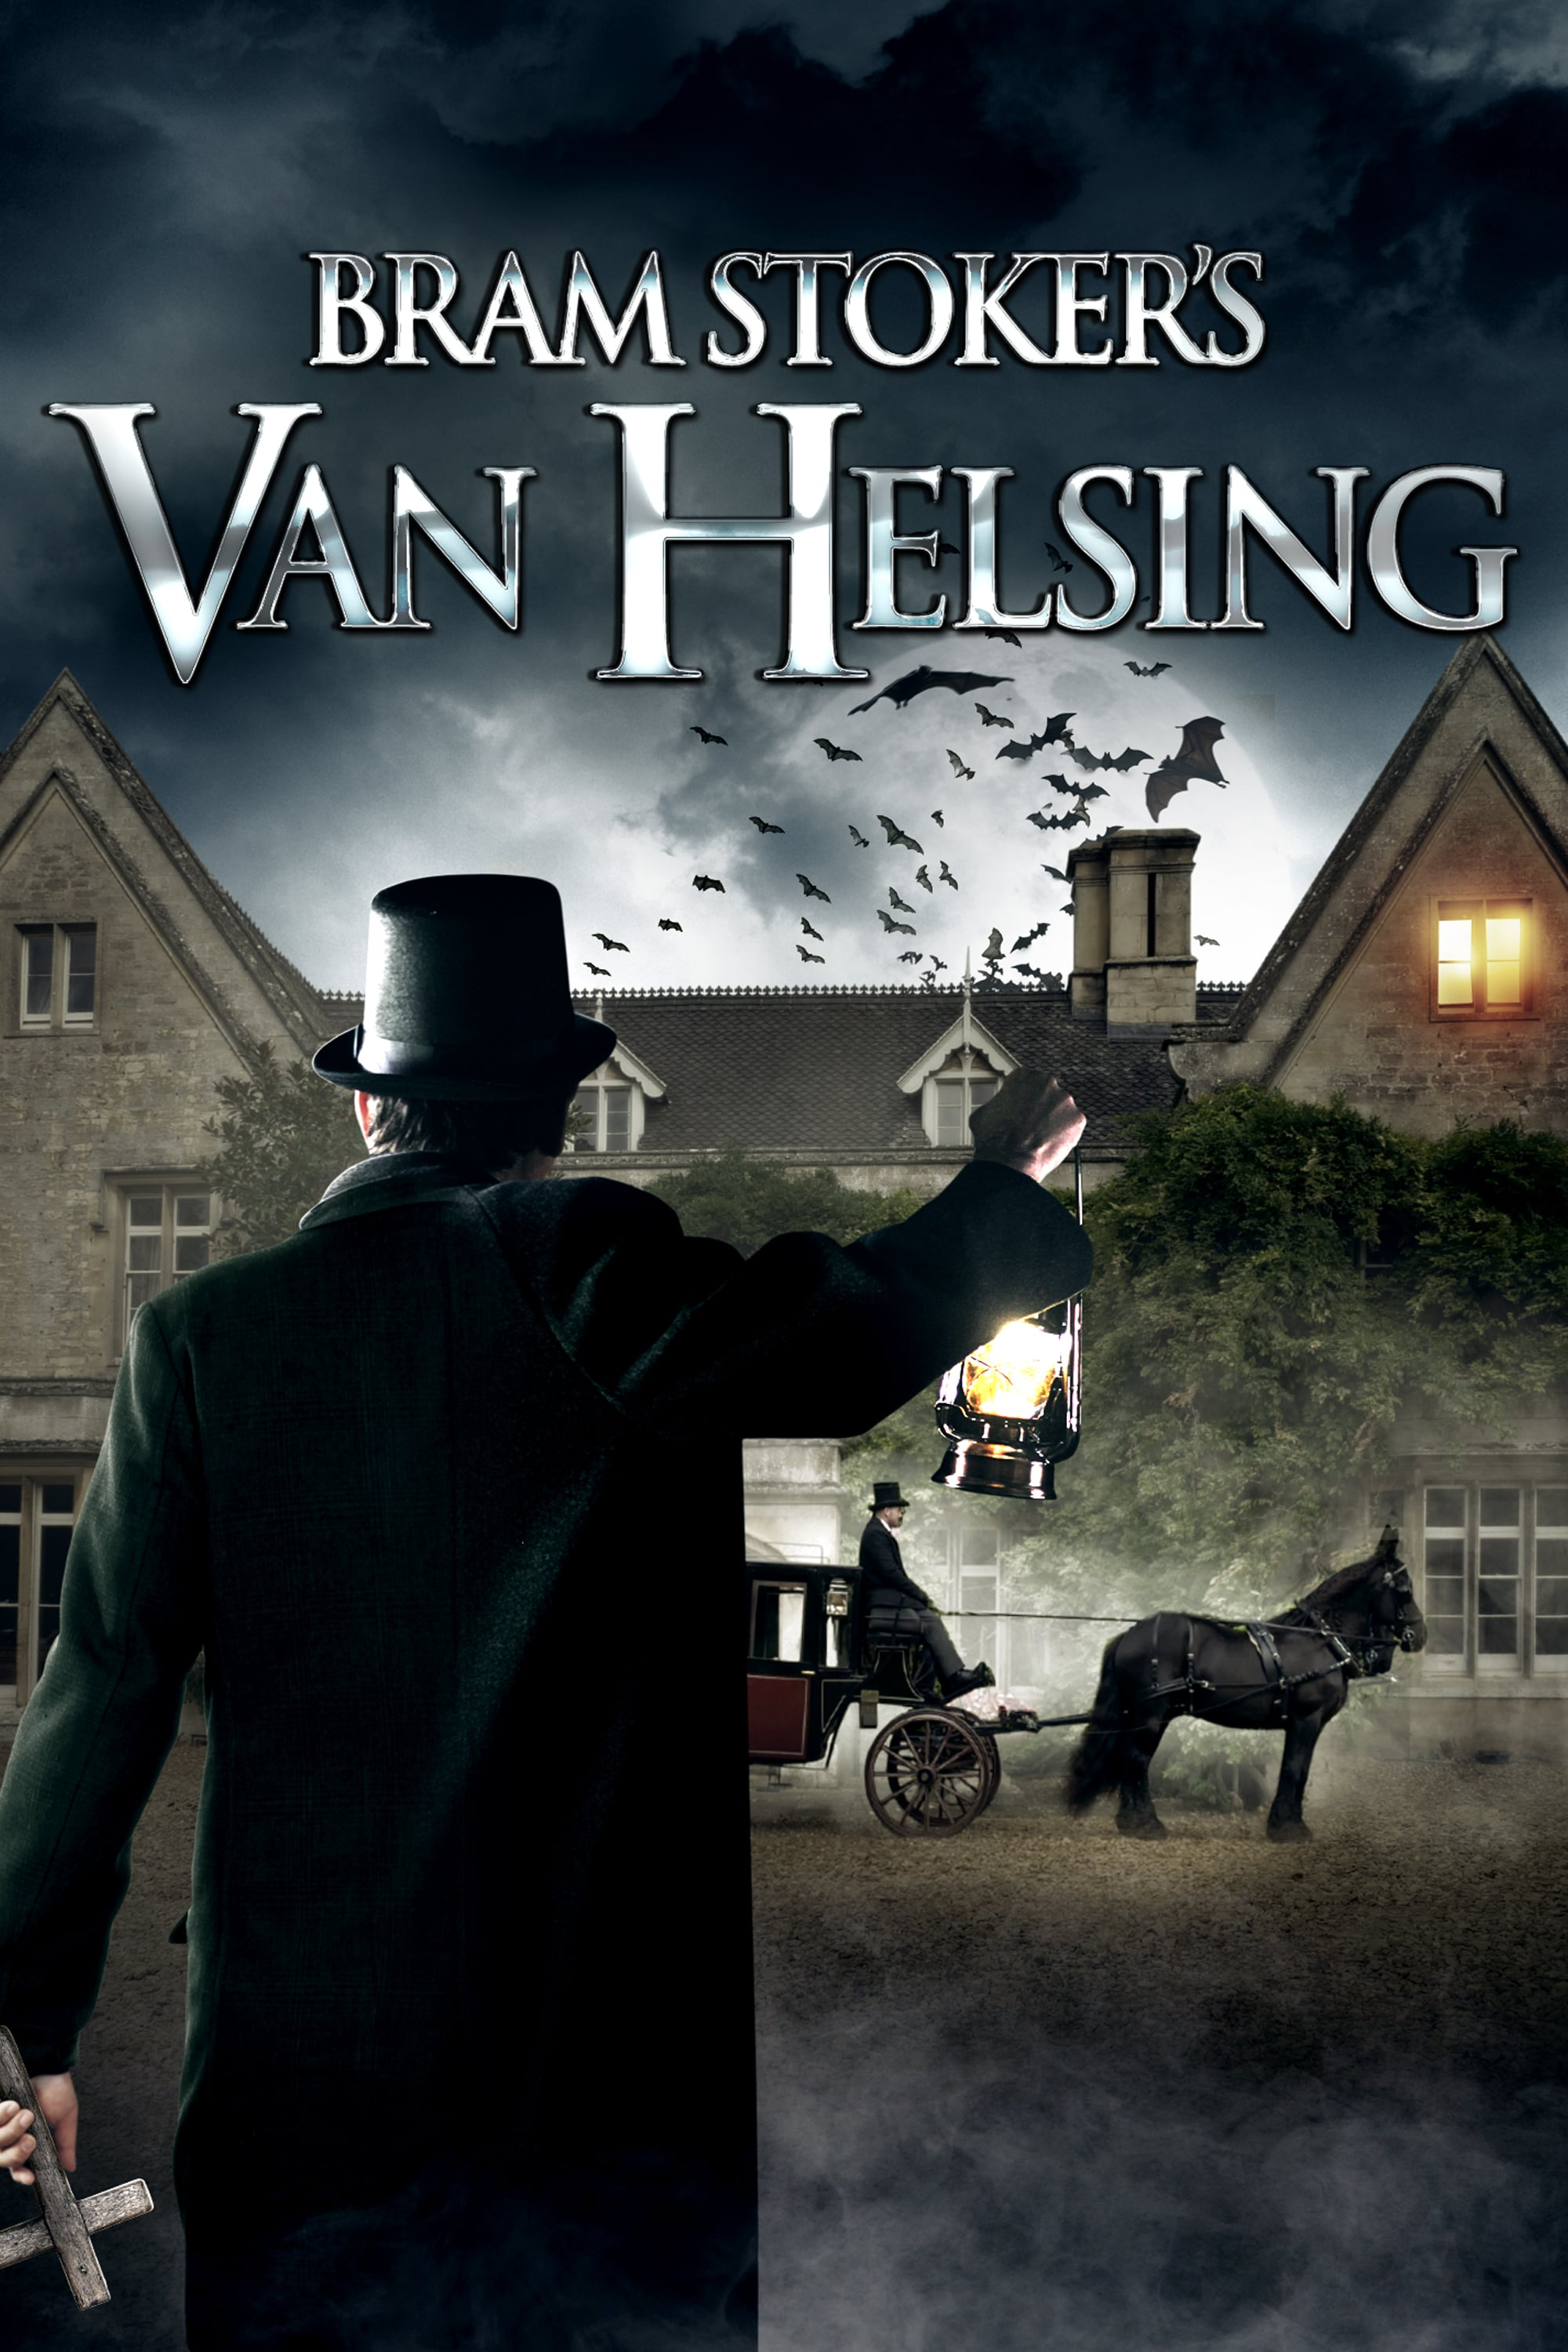 Download Bram Stokers Van Helsing 2021 English 480p HDRip 300MB